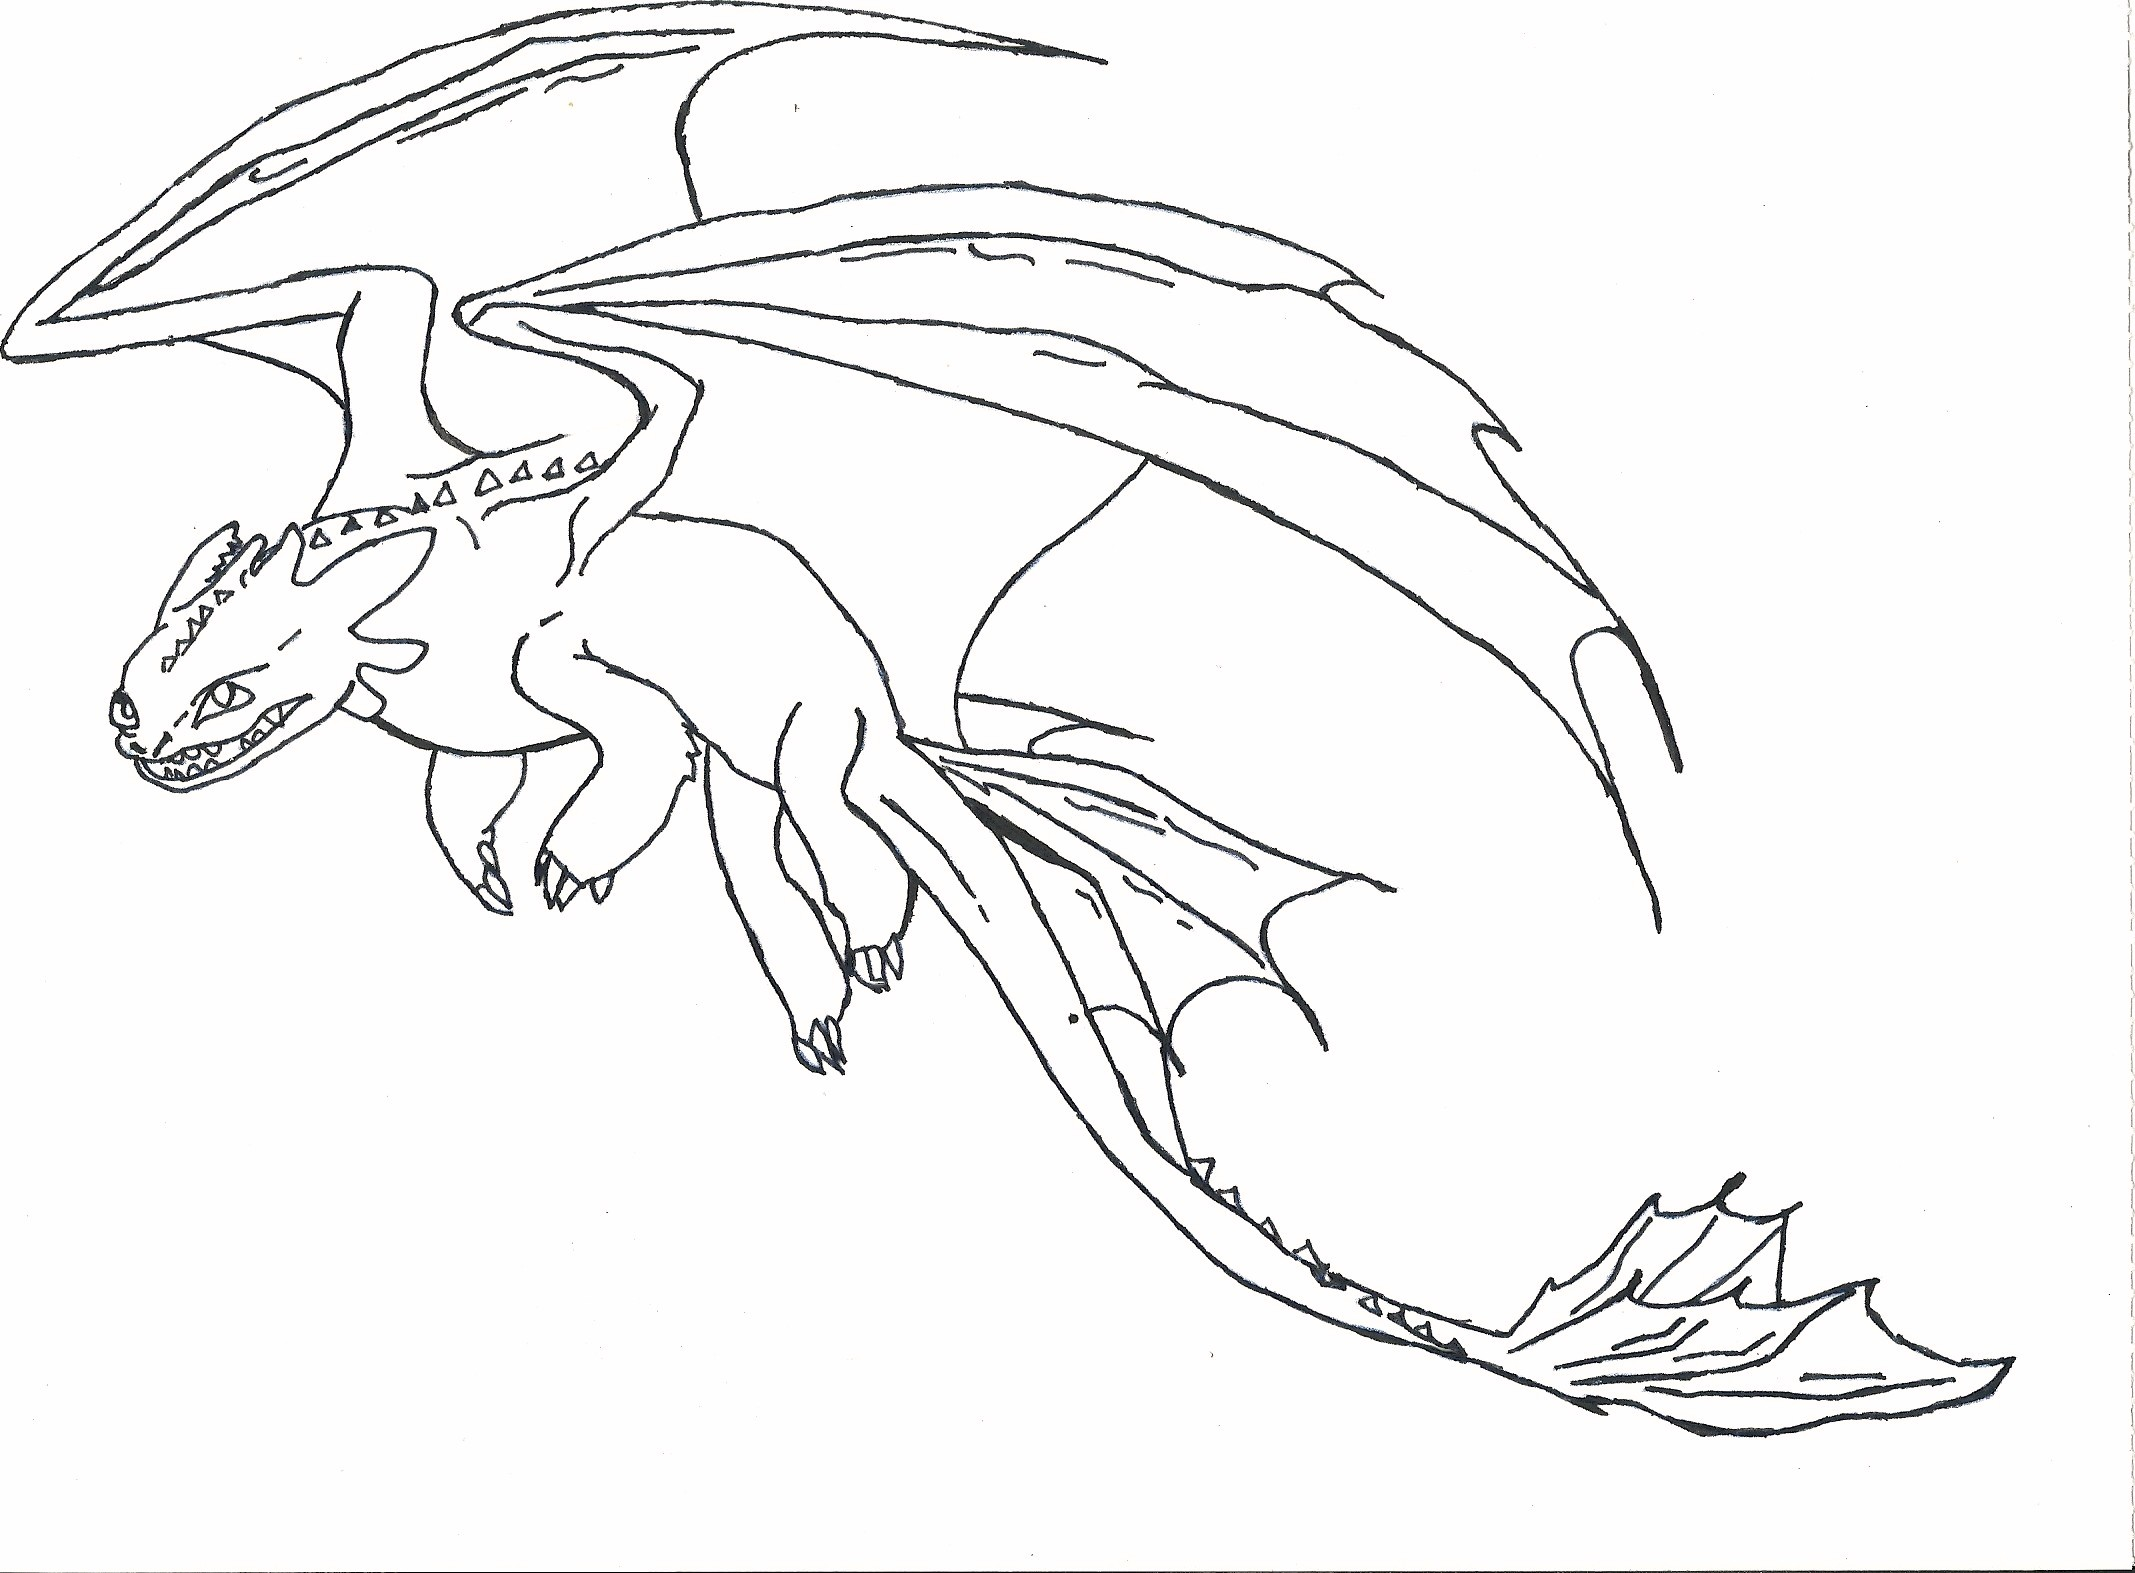 toothless coloring page - easy toothless coloring pages